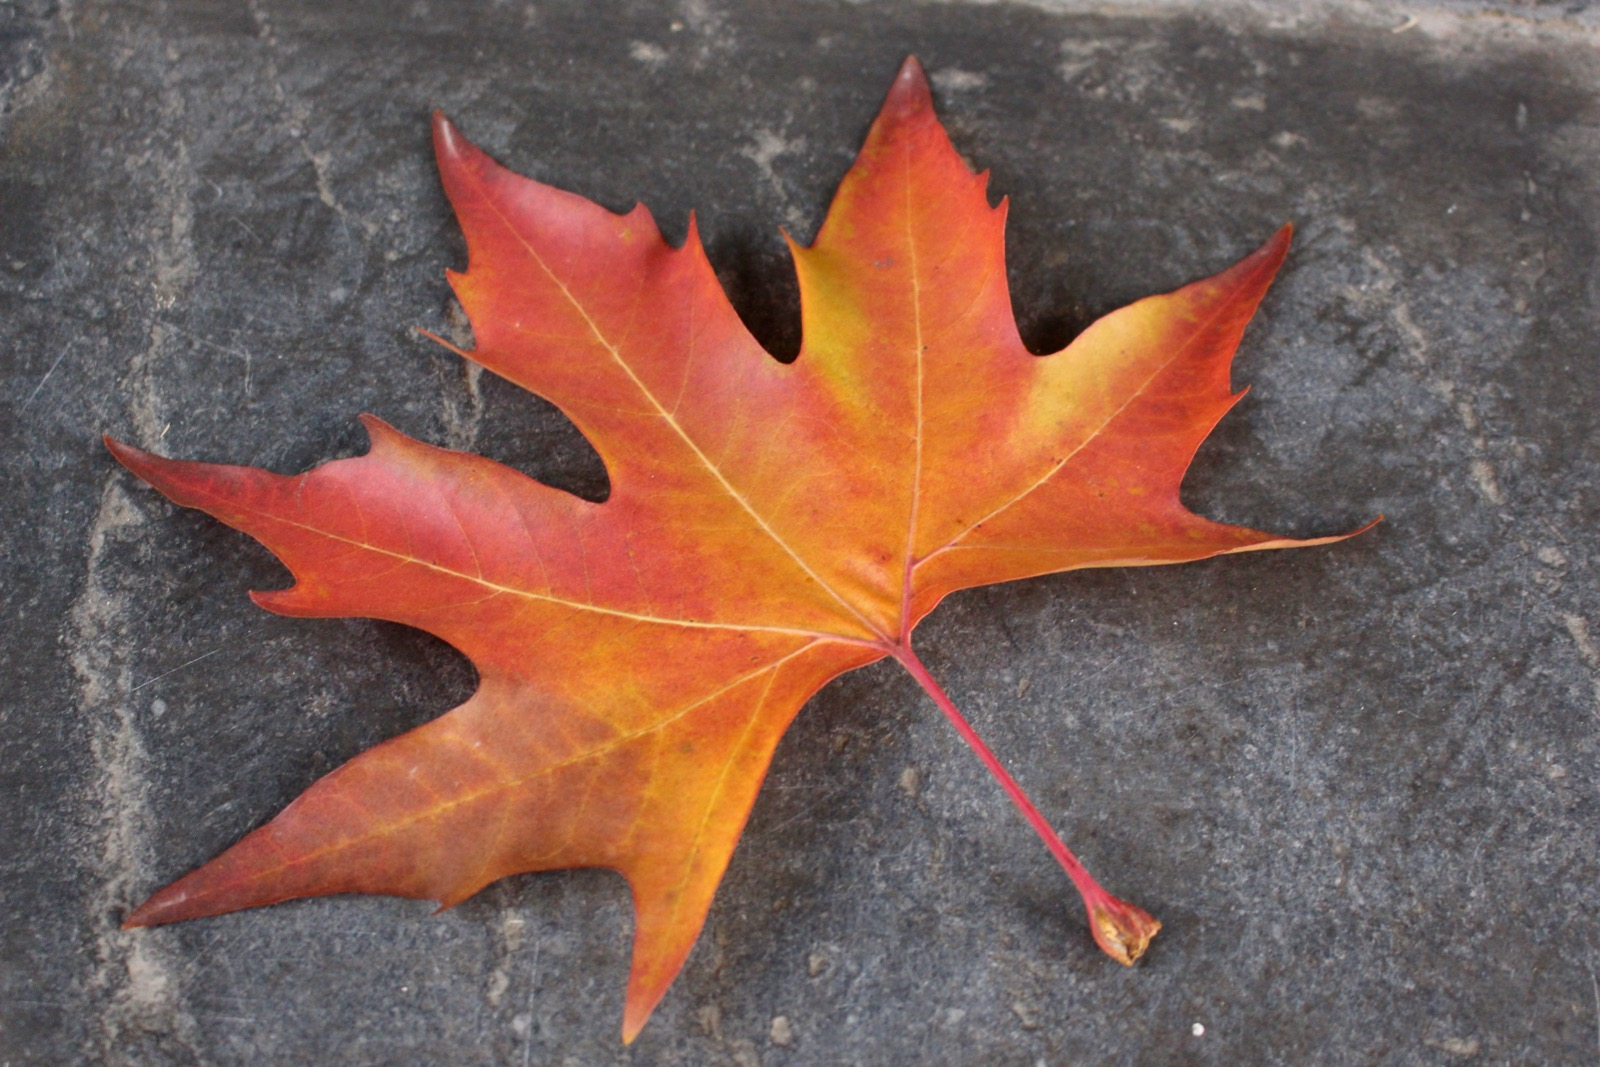 The bright red Chinar tree leaf seen in the fall autumn season in Srinagar, Kashmir